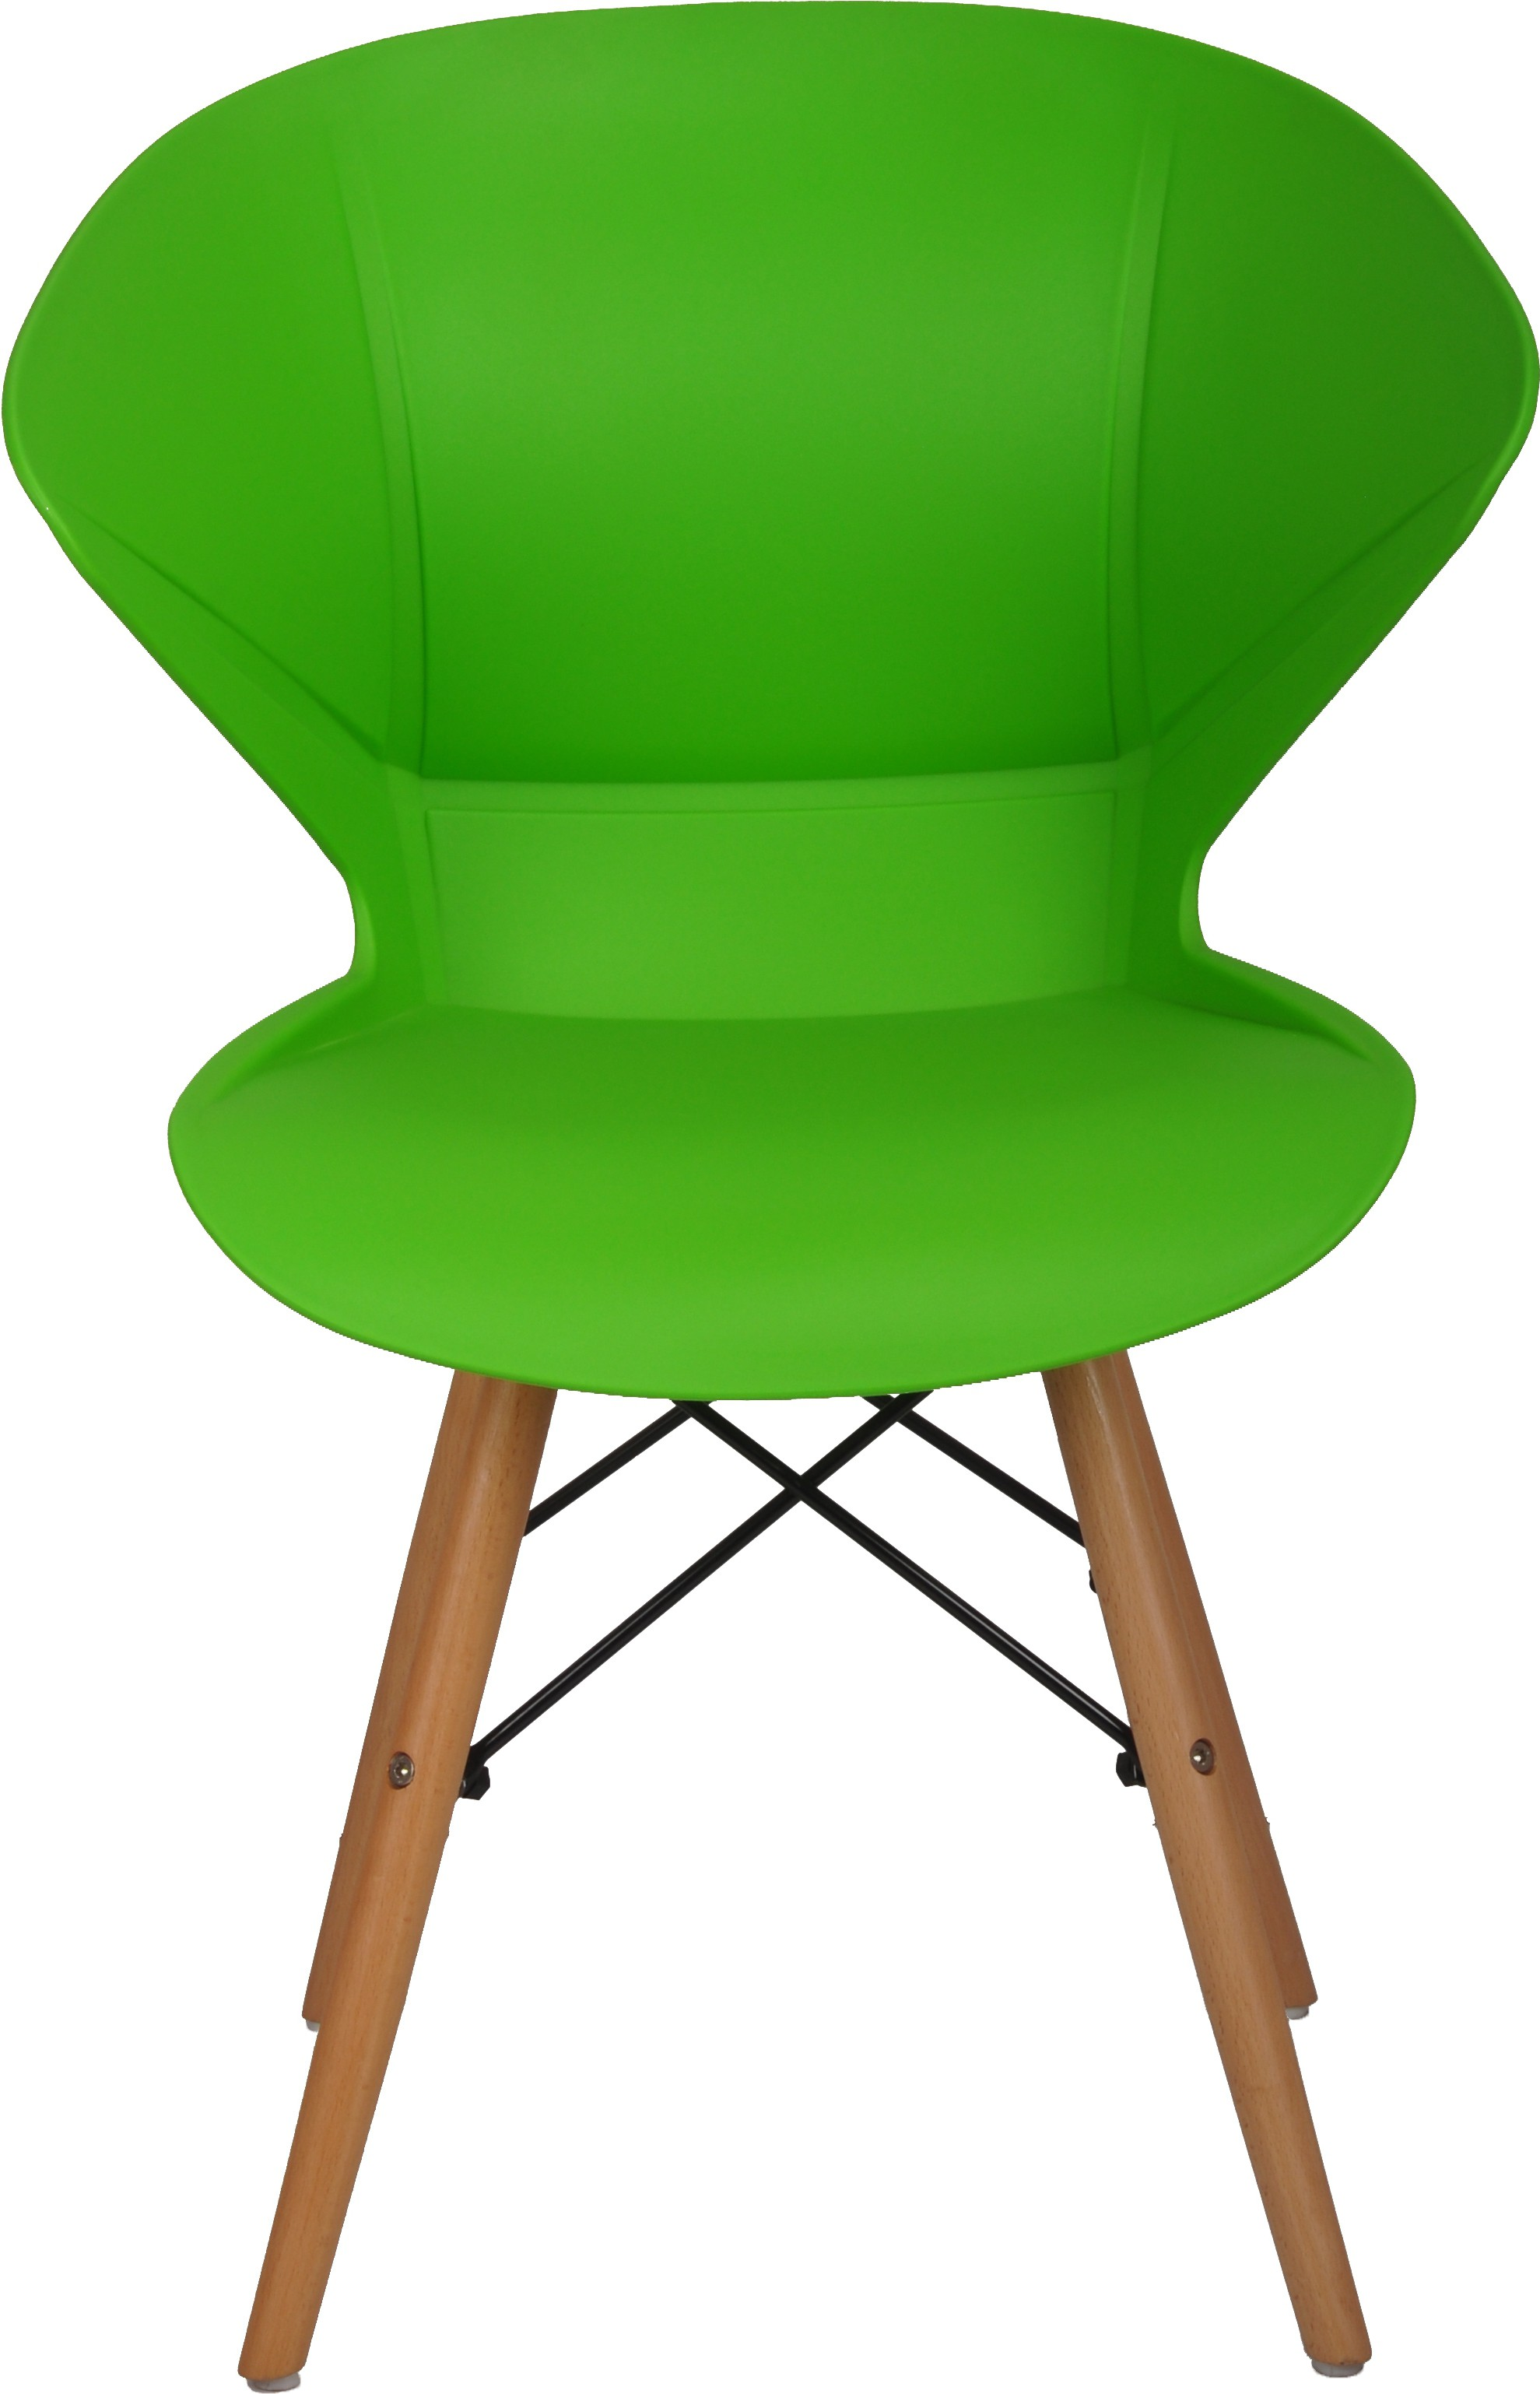 View Bharat Furniture Frog Plastic Living Room Chair(Finish Color - Green) Furniture (Bharat Furniture)